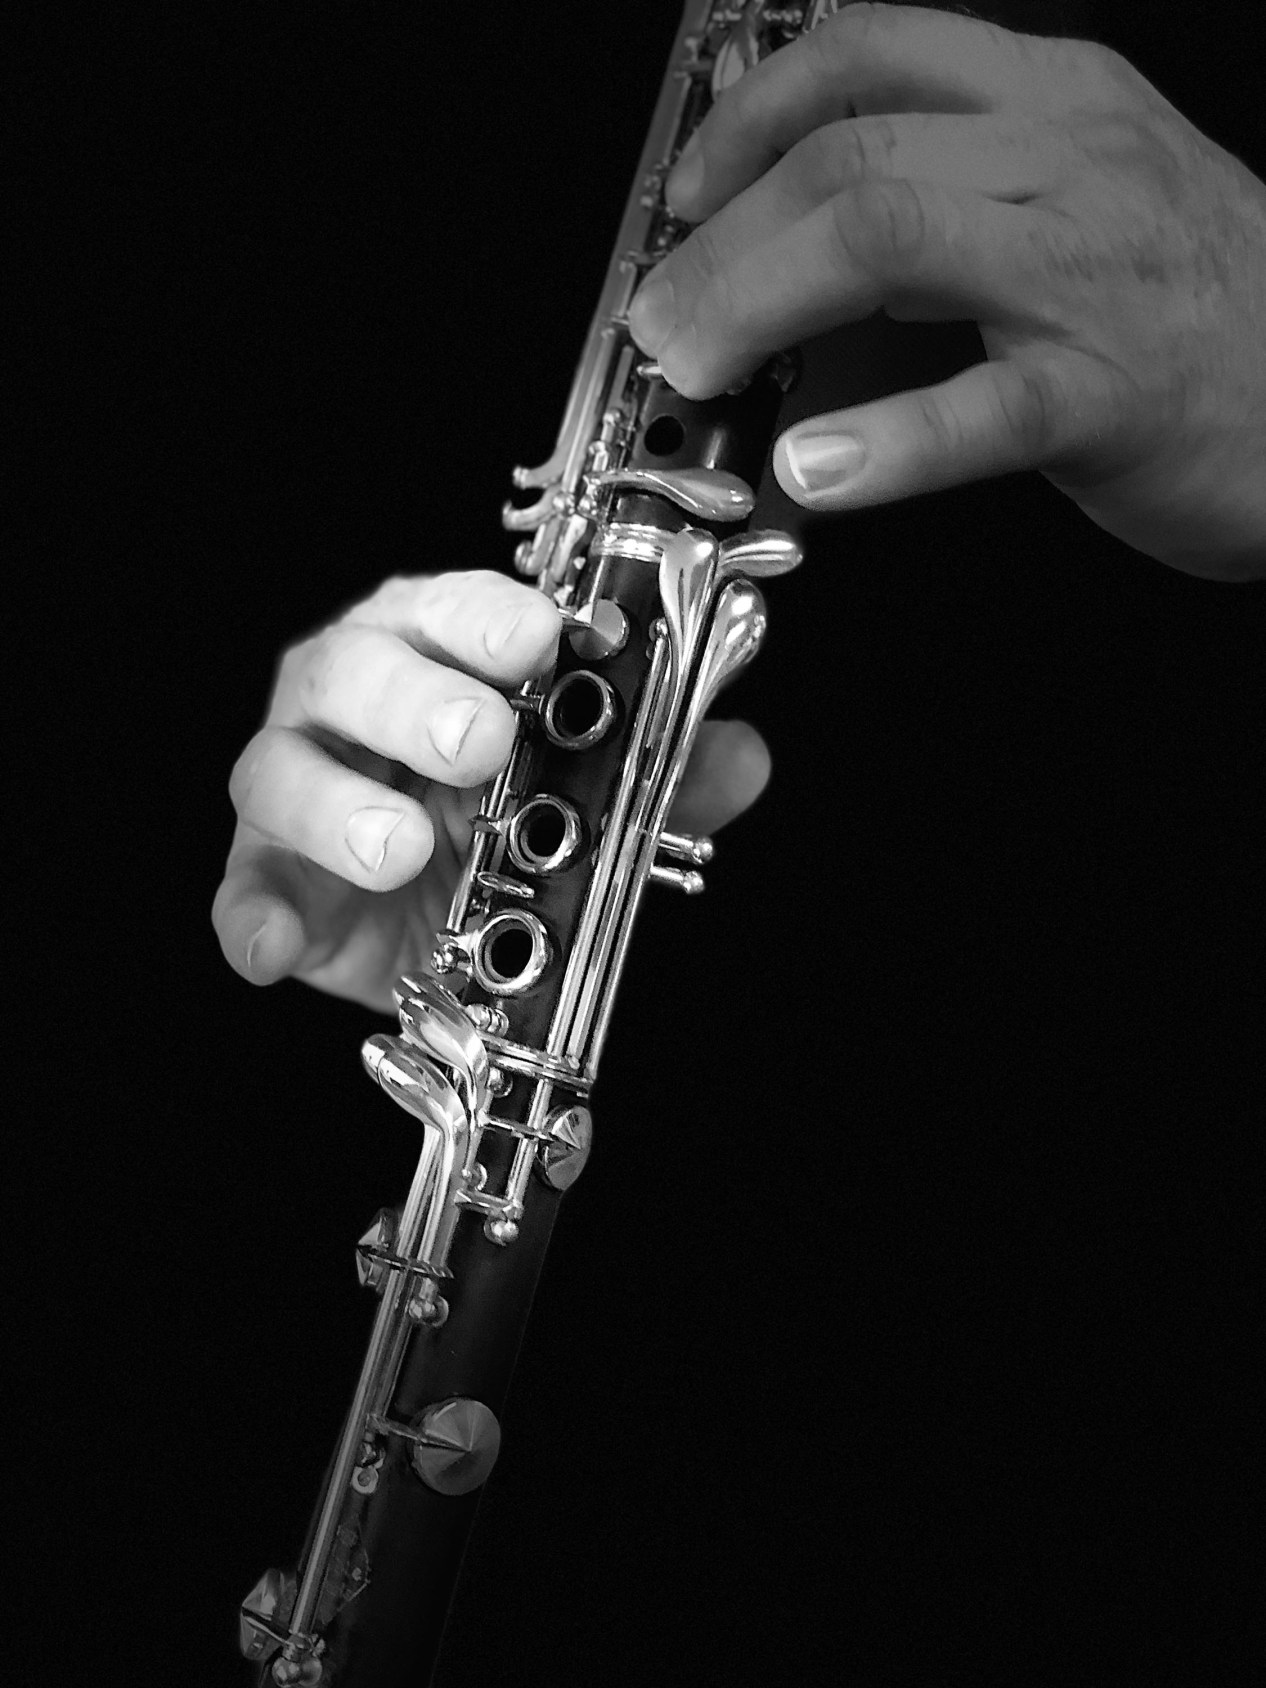 Close-up demonstration of clarinet finger positions